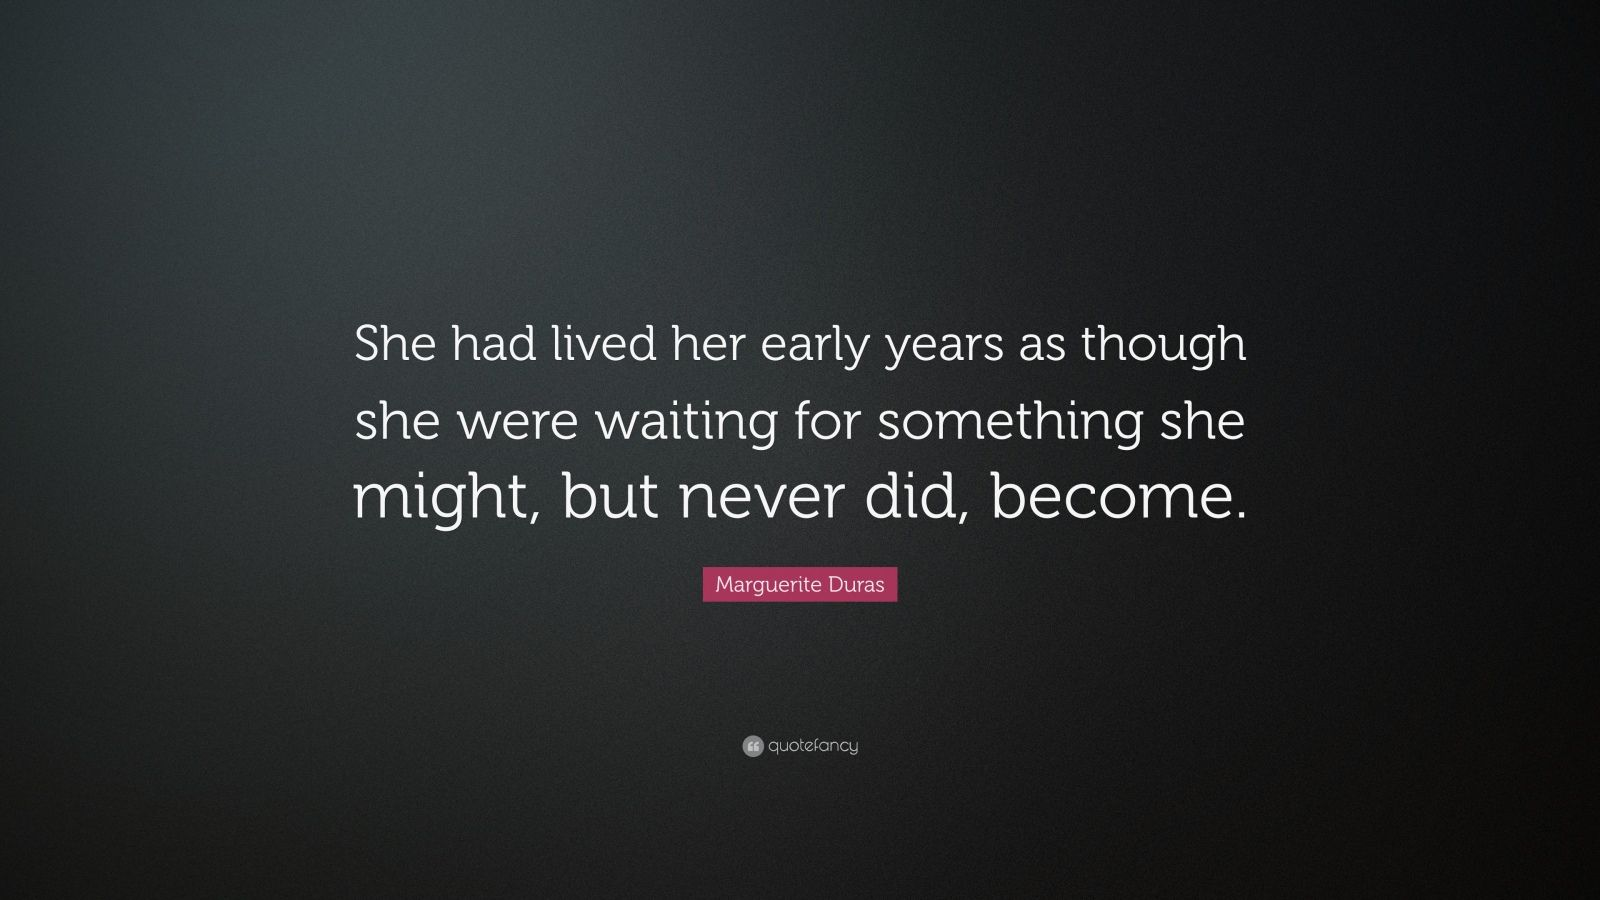 """Marguerite Duras Quote: """"She had lived her early years as though she were waiting for something she might, but never did, become."""""""